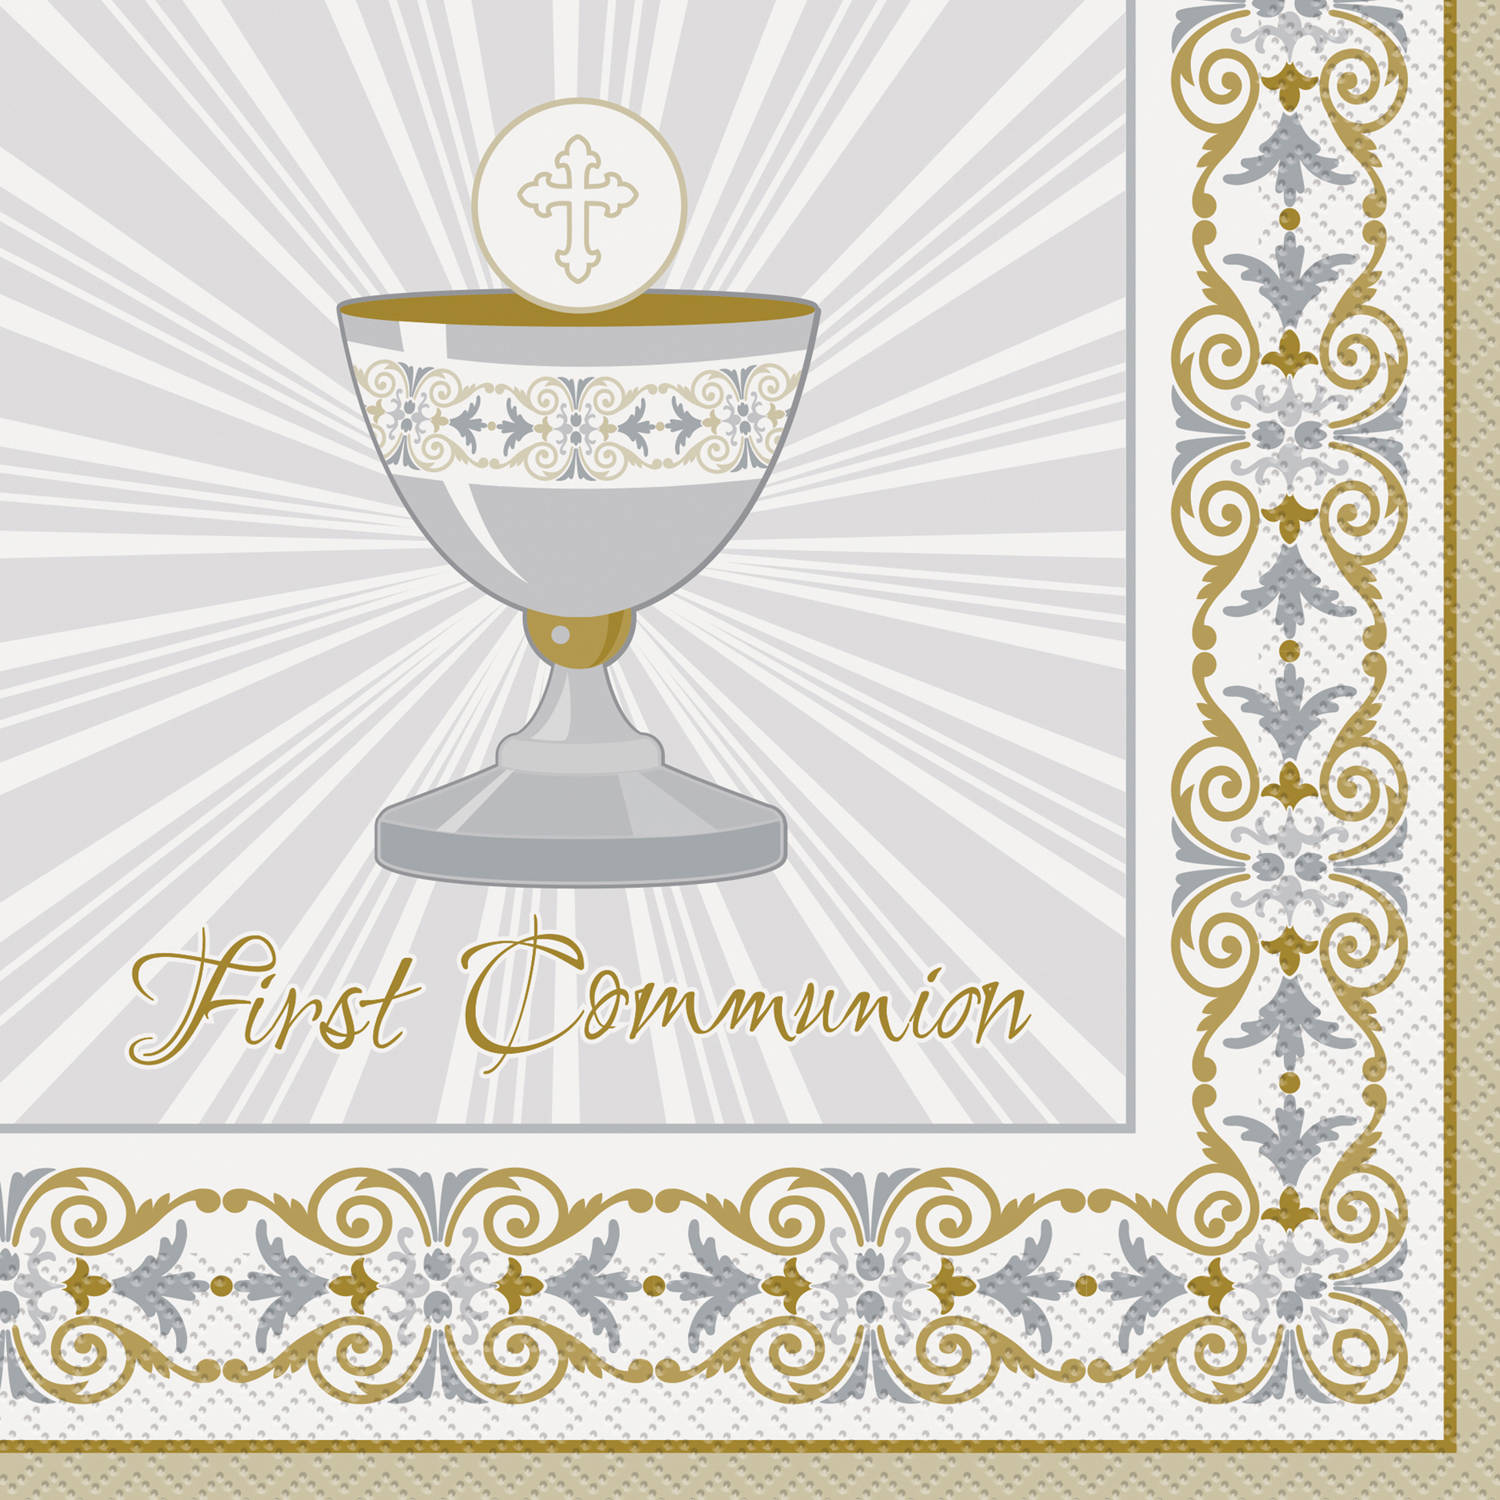 Radiant Cross First Communion Paper Luncheon Napkins 6.5 in Gold u0026 Silver ...  sc 1 st  Walmart & Radiant Cross First Communion Paper Luncheon Napkins 6.5 in Gold ...